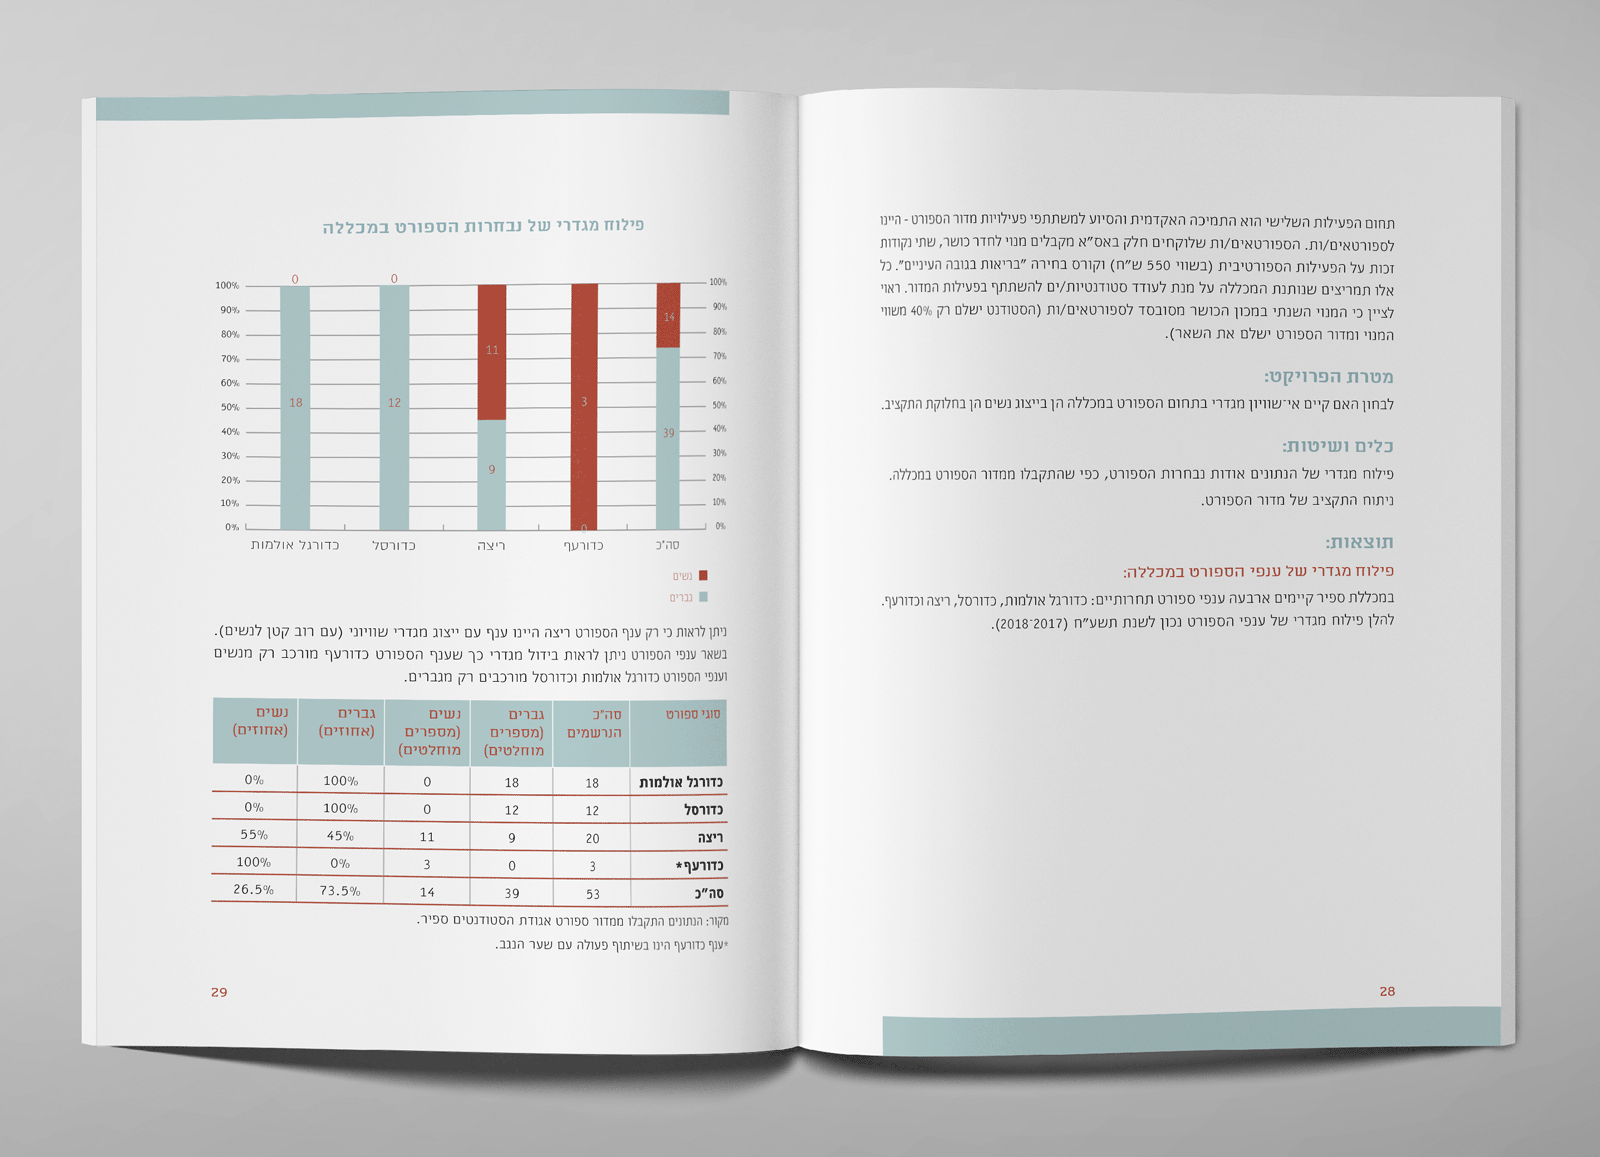 http://bigeyes.co.il/wp-content/uploads/2019/07/adva-gender18-8.png